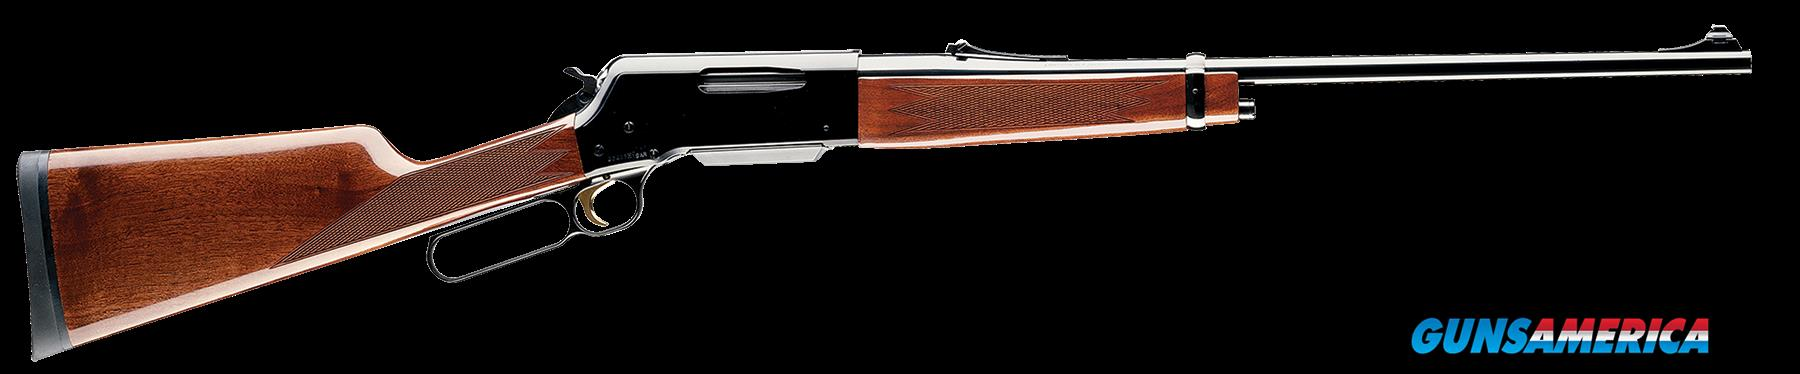 "Browning 034006109 BLR Lightweight 81 Lever 22-250 Remington 20"" 4+1 Walnut Stock Blued  Guns > Rifles > Browning Rifles > Lever Action"